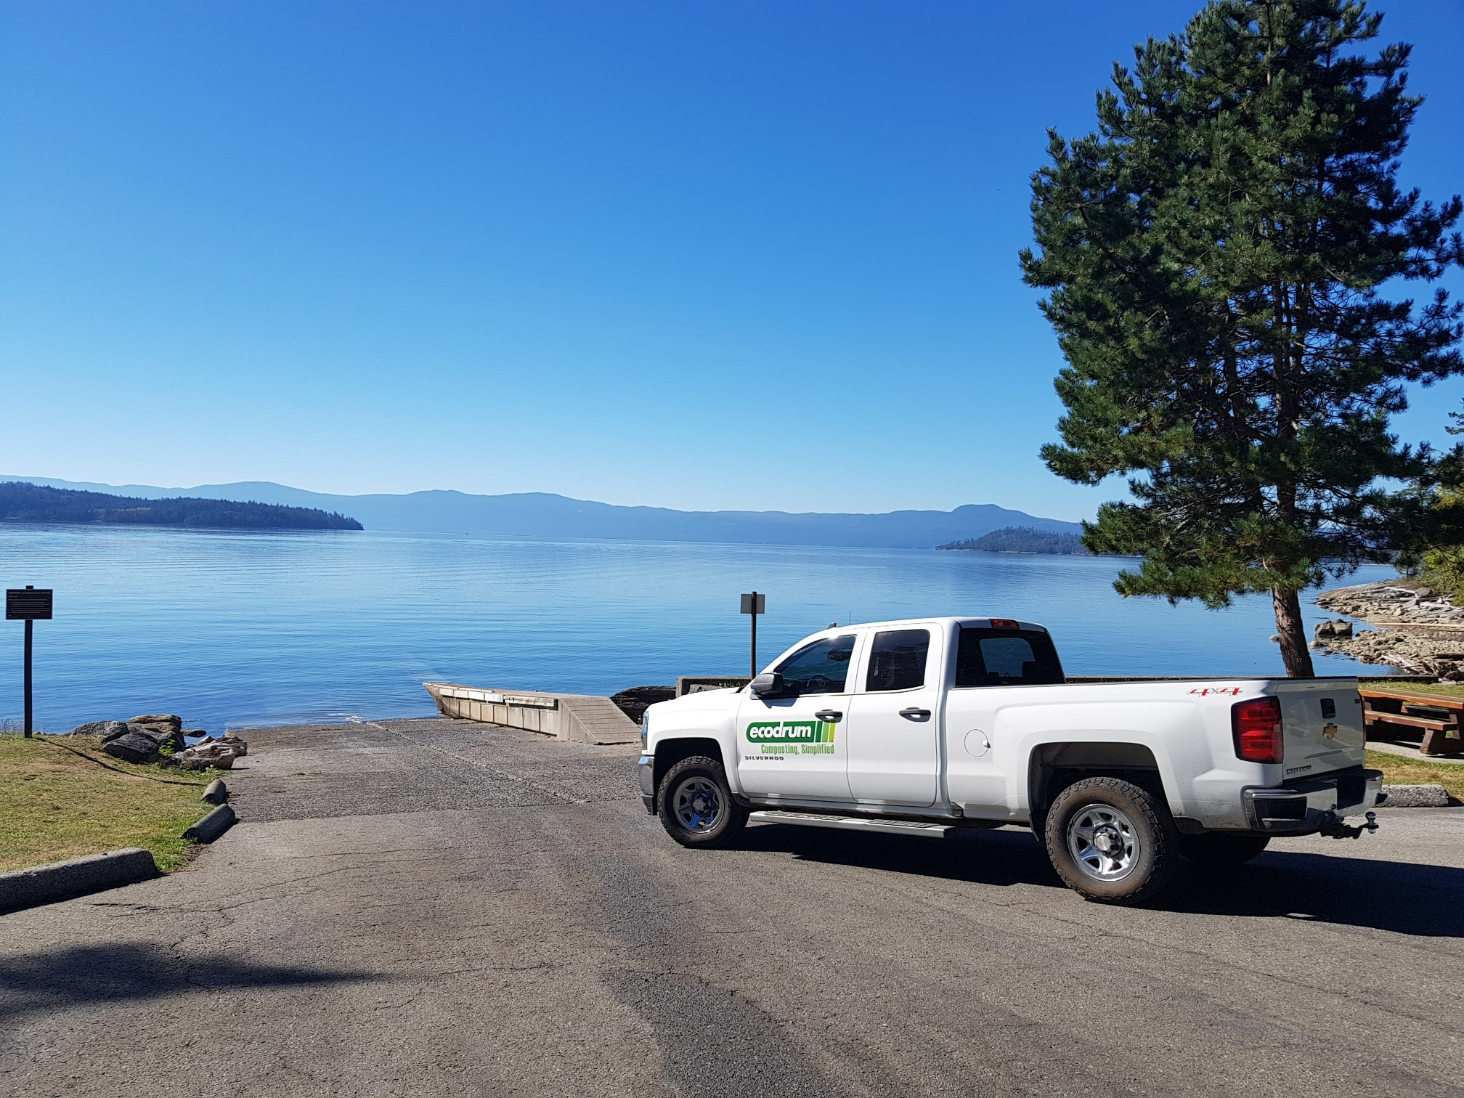 truck by the lake